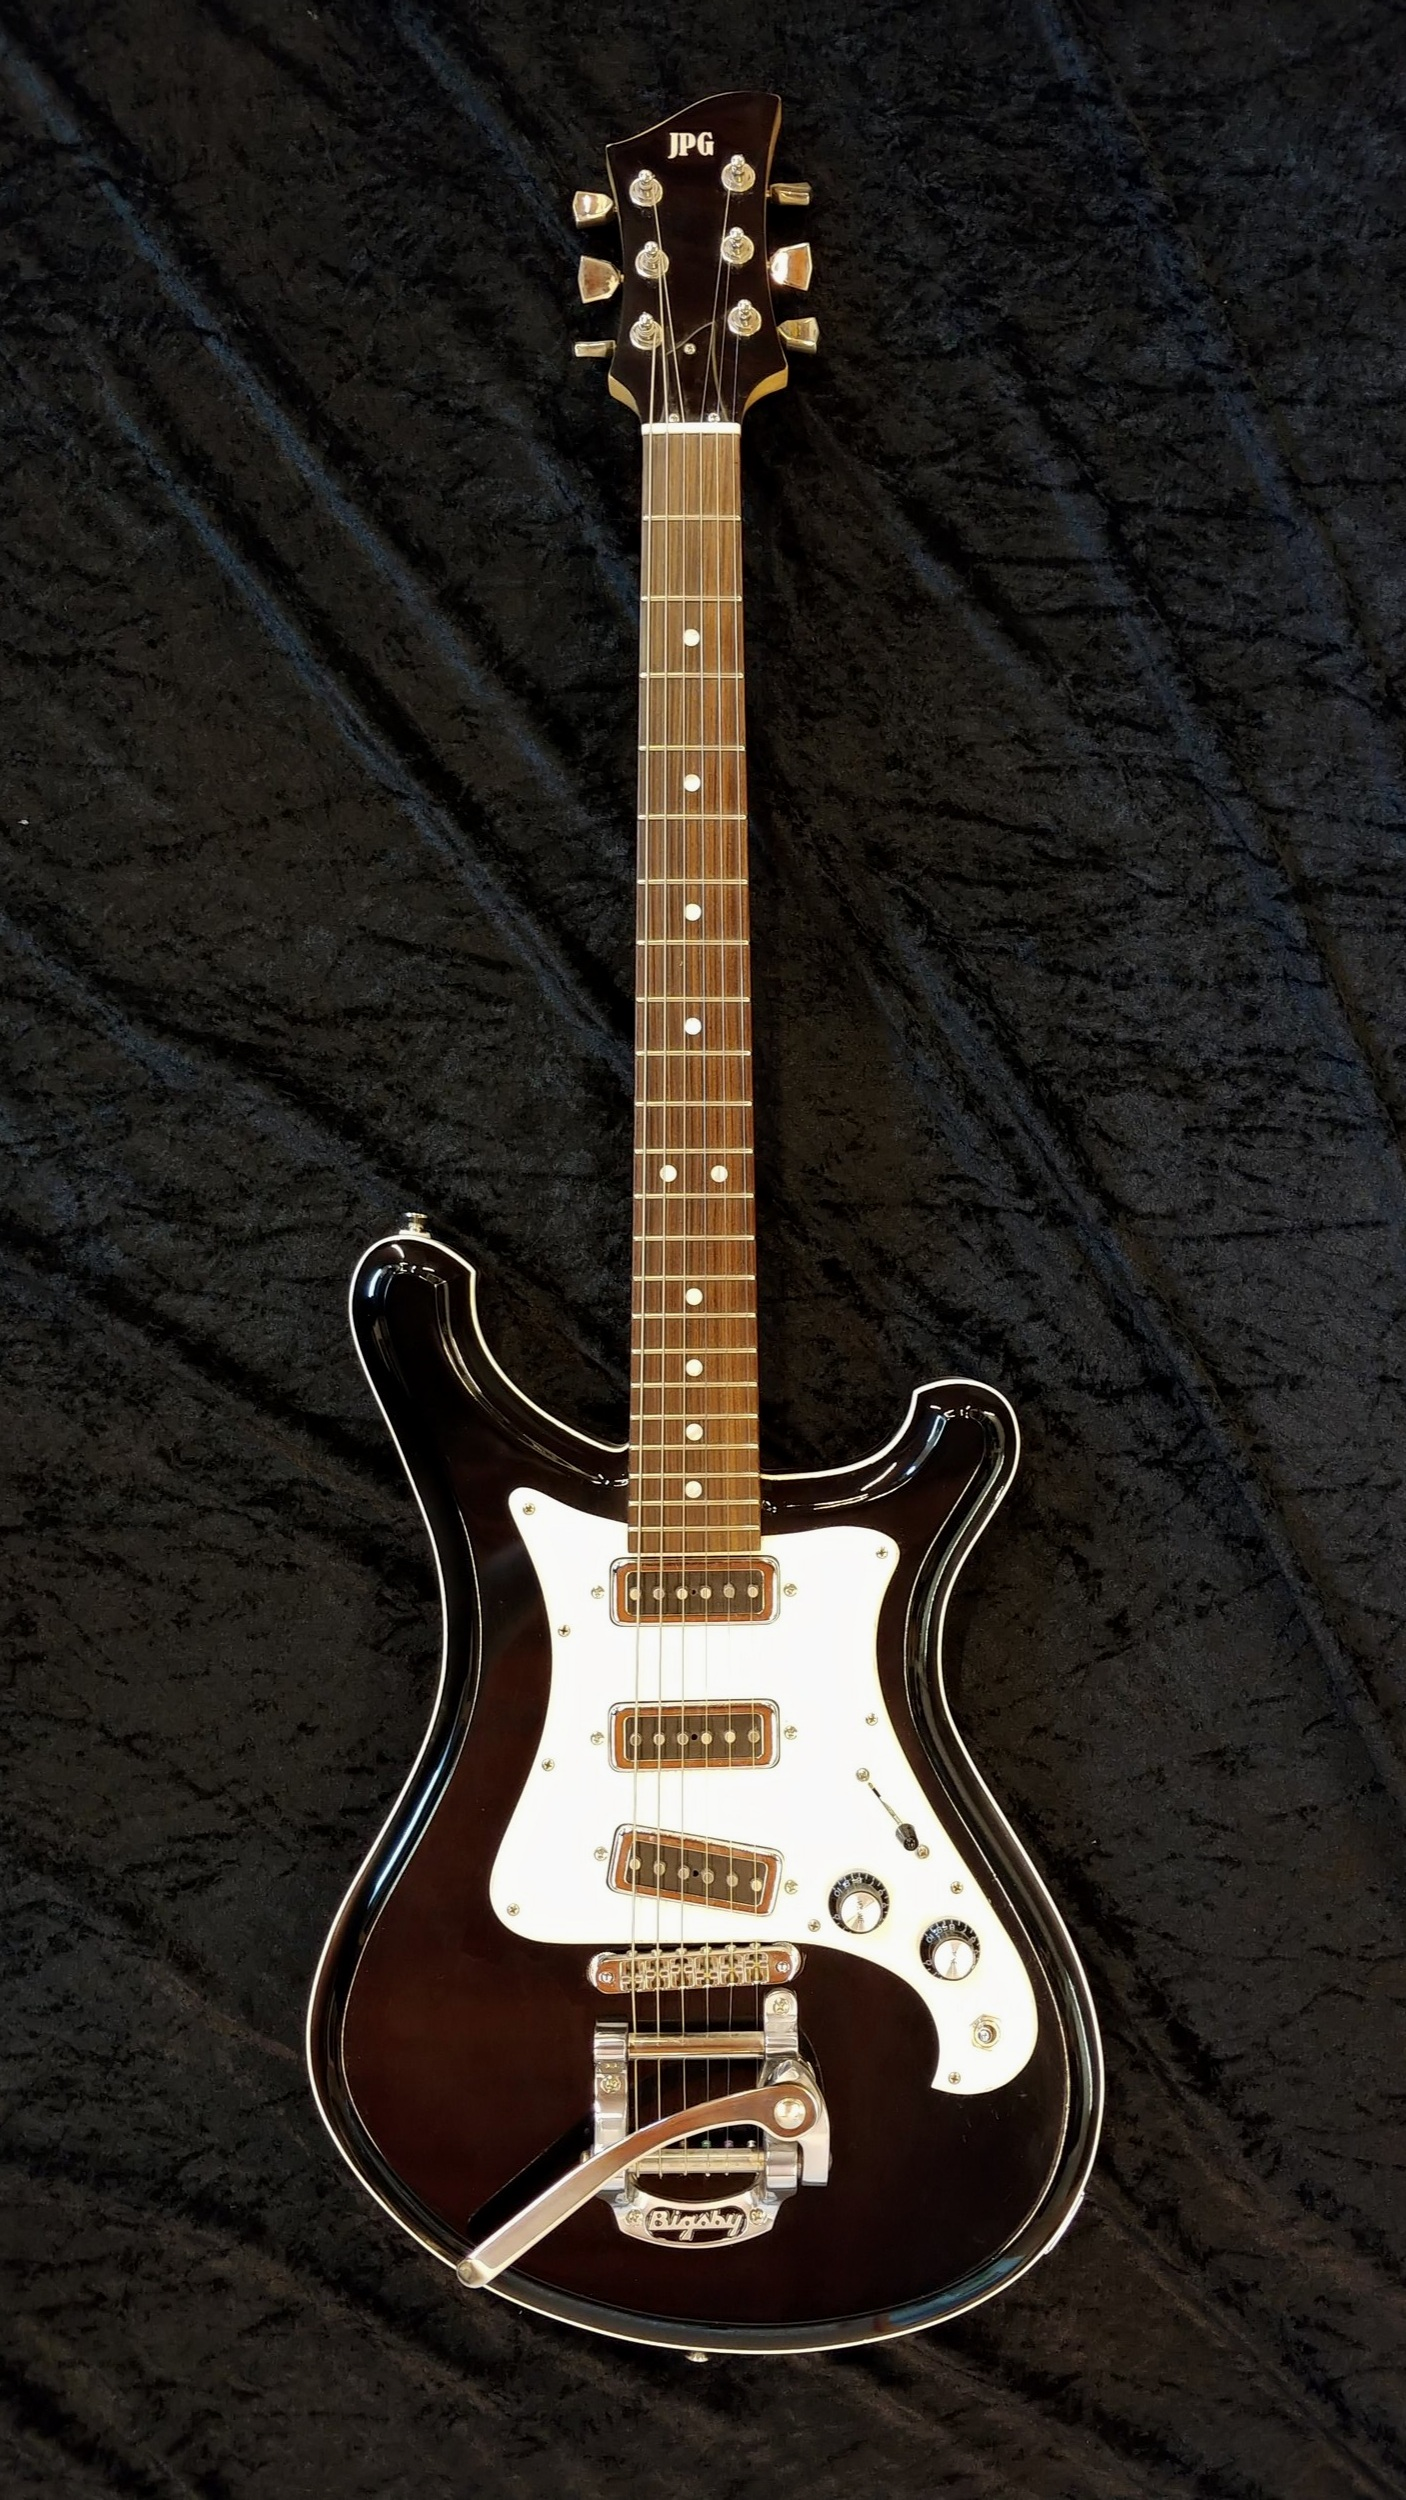 Glass Hammer - Classic 60's Styling with modern High-End construction and playability.Starting From £1,900